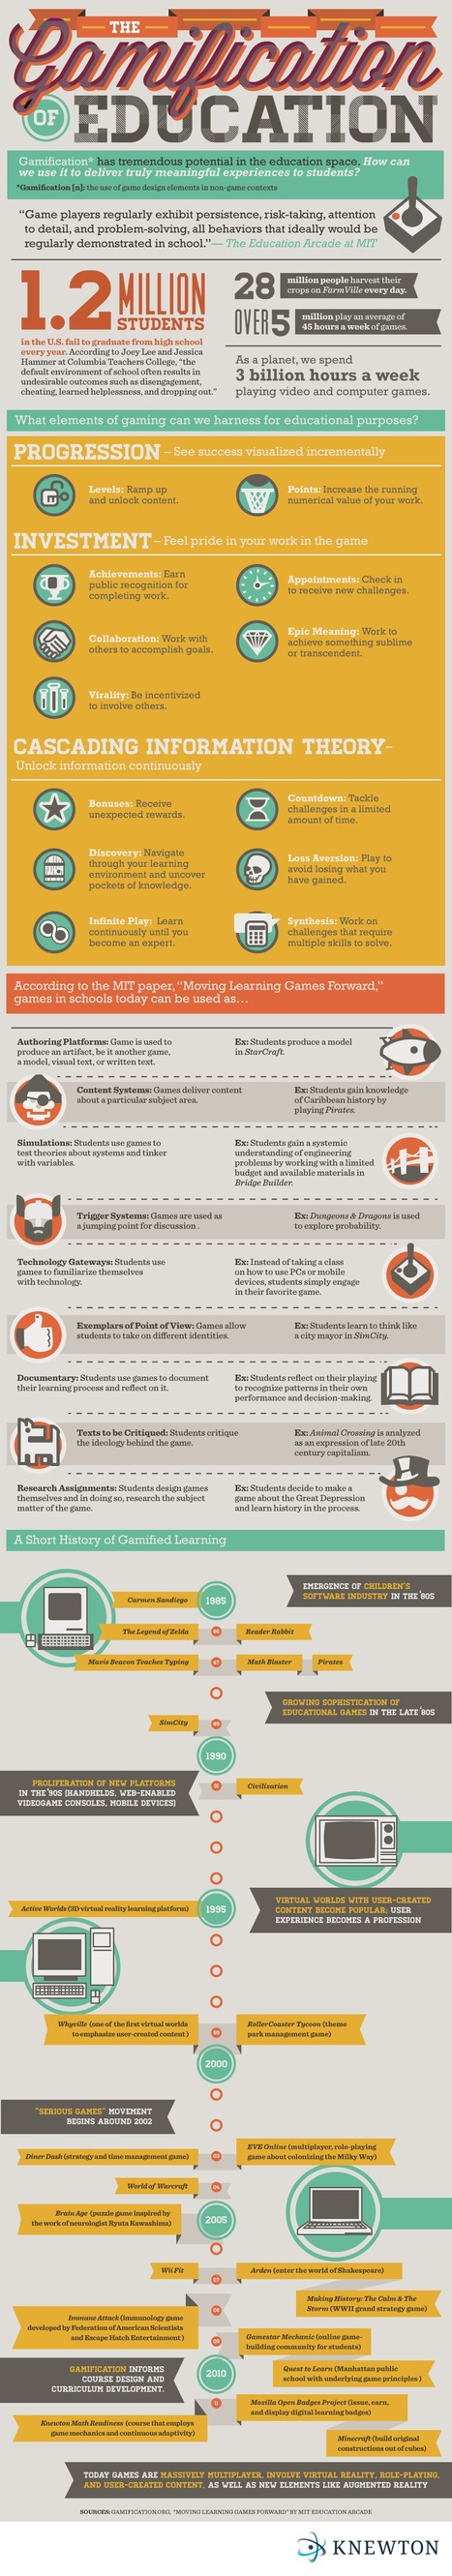 Infographic : The Gamification of Education | Digital Archeology | Scoop.it